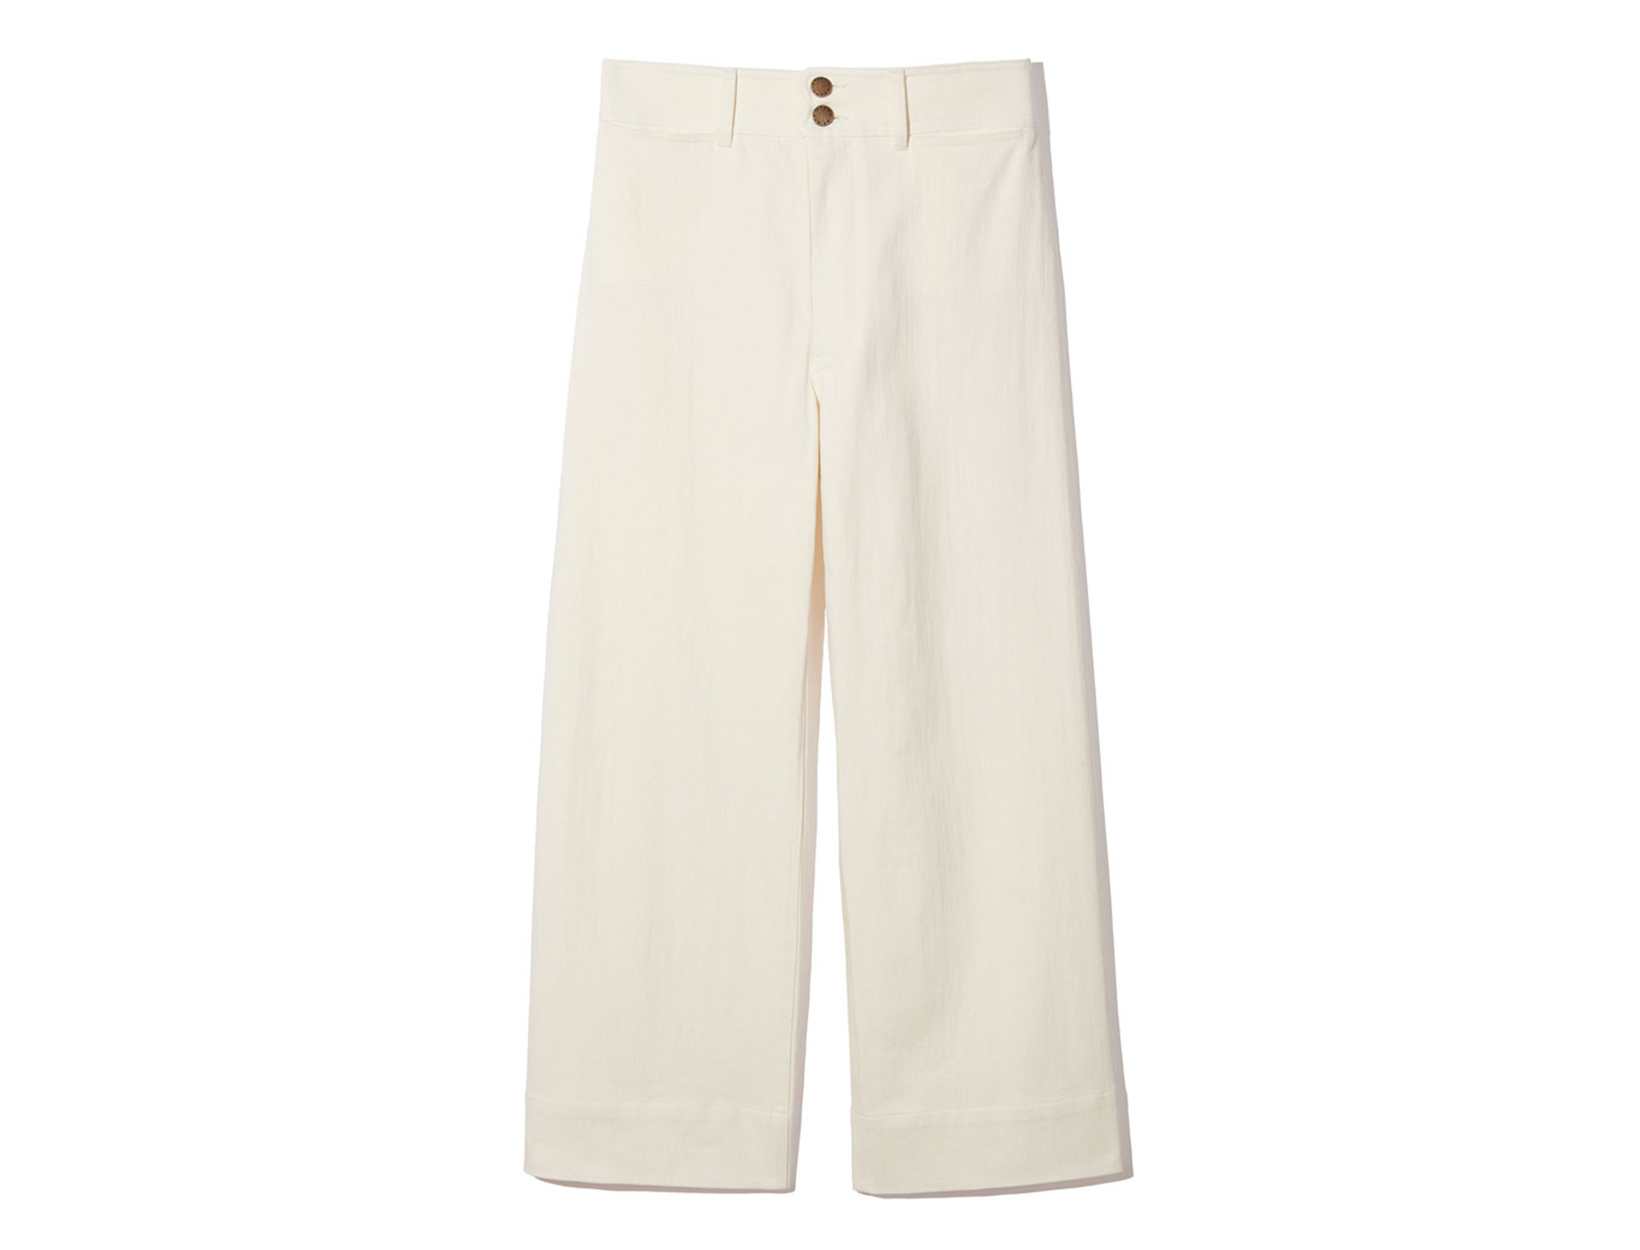 One Piece, Three Ways: The Canvas Pant